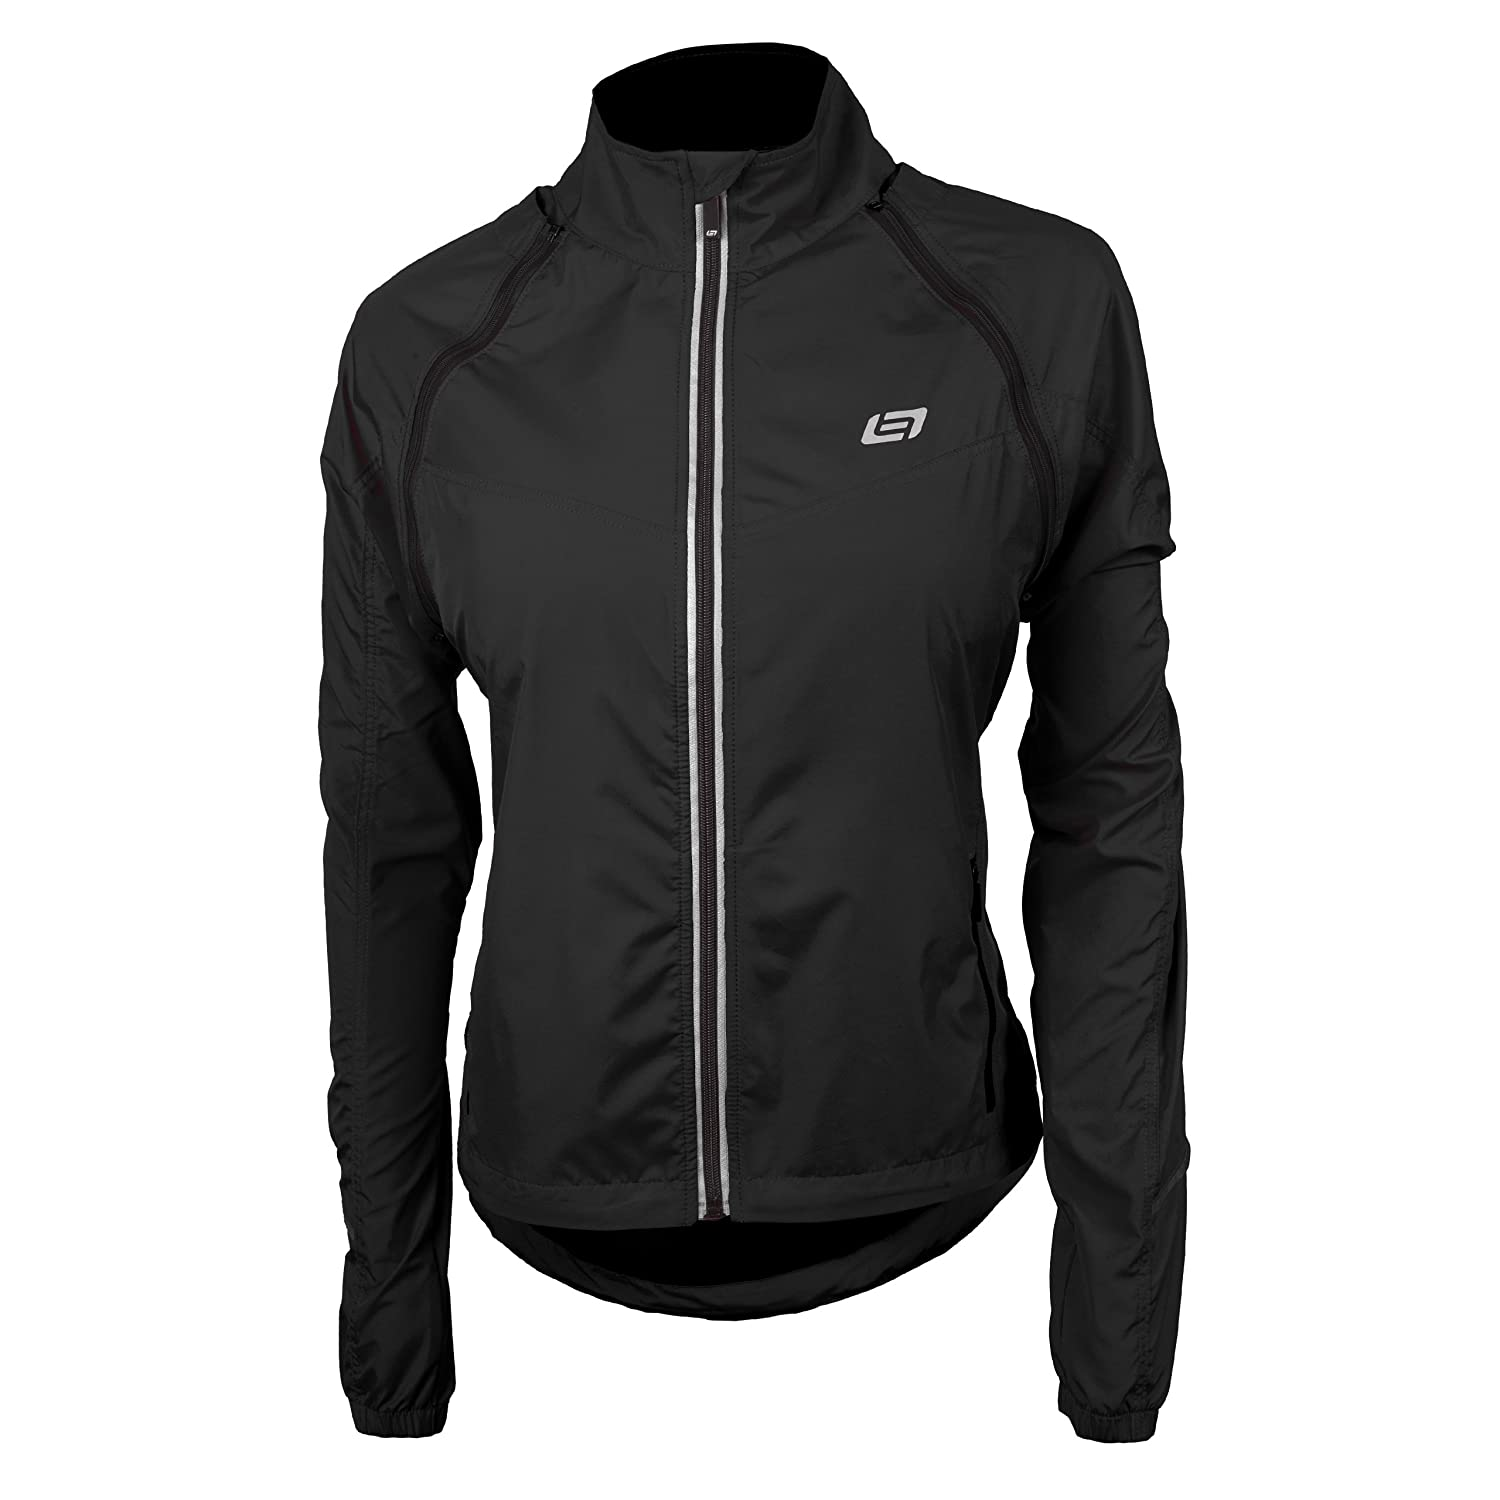 Bellwether Women's Convertible Jacket Black Small Bellwether Cycling Clothing 93520